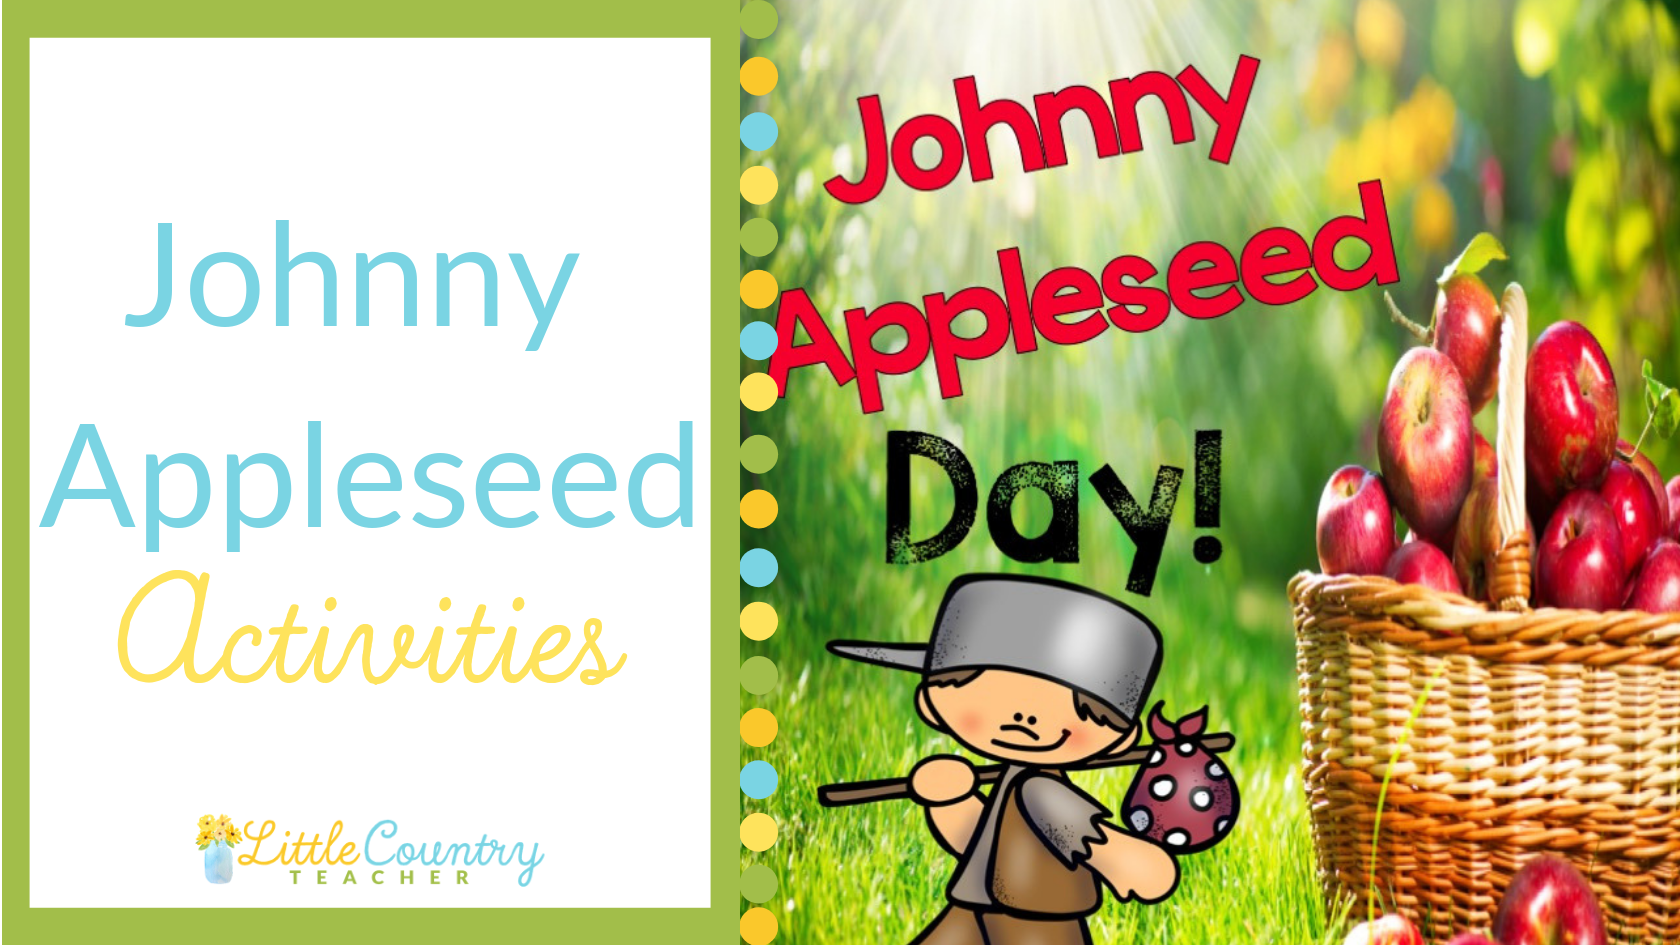 Johnny Appleseed Day Is Classic But Your Johnny Appleseed